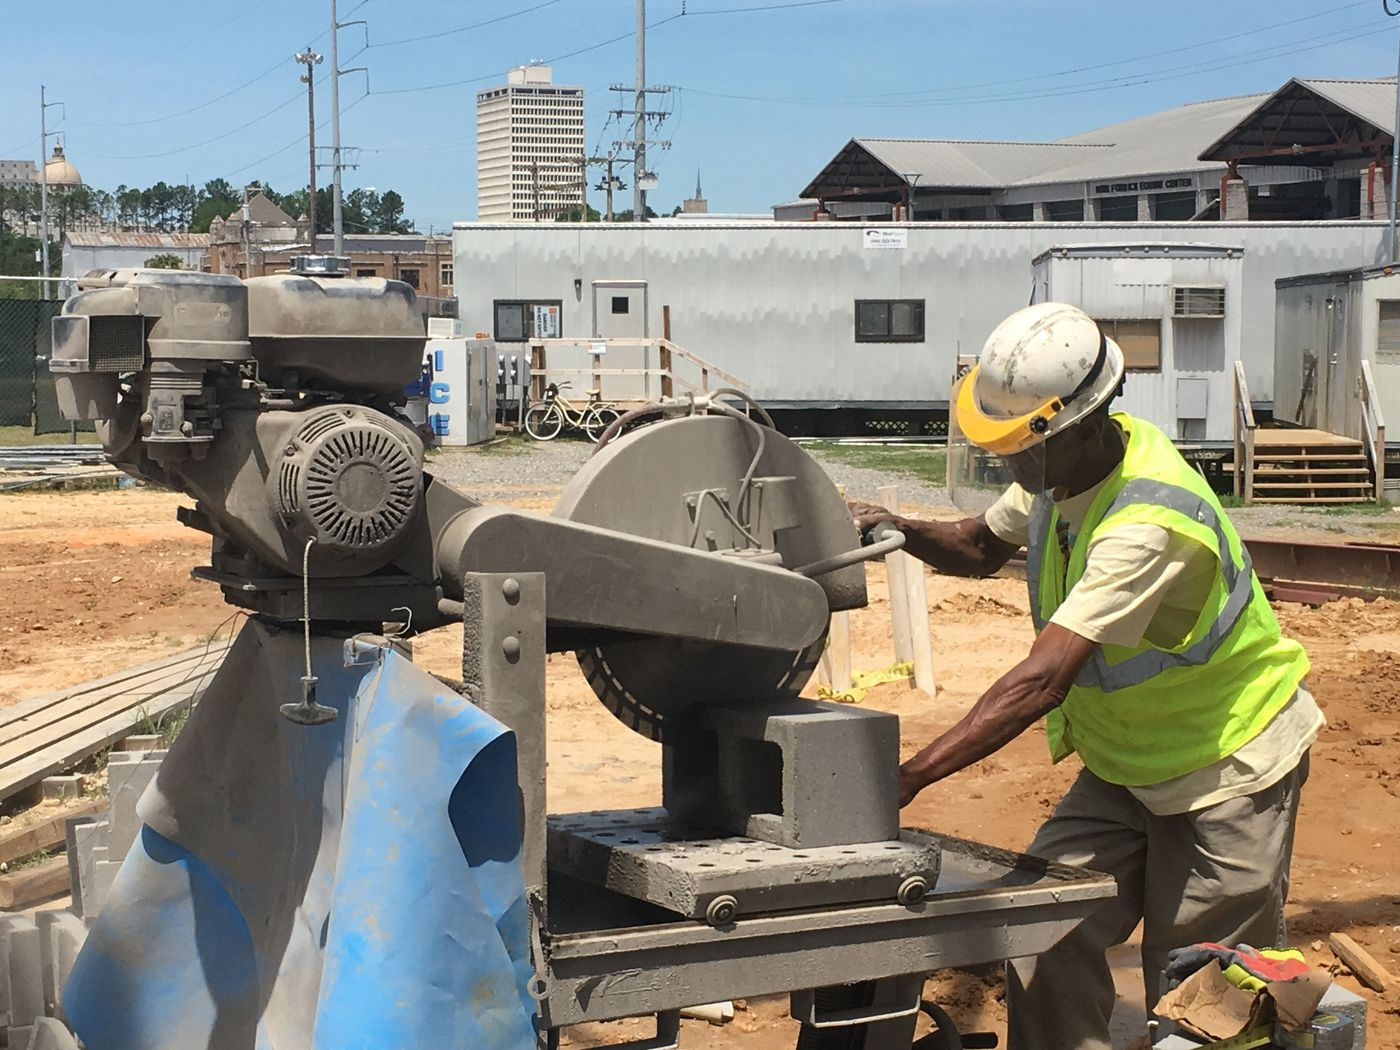 Masonry work is underway on the new Trade Mart at the Fairgrounds. Fountain Construction Company of Jackson was awarded the contract. Source: WLBT